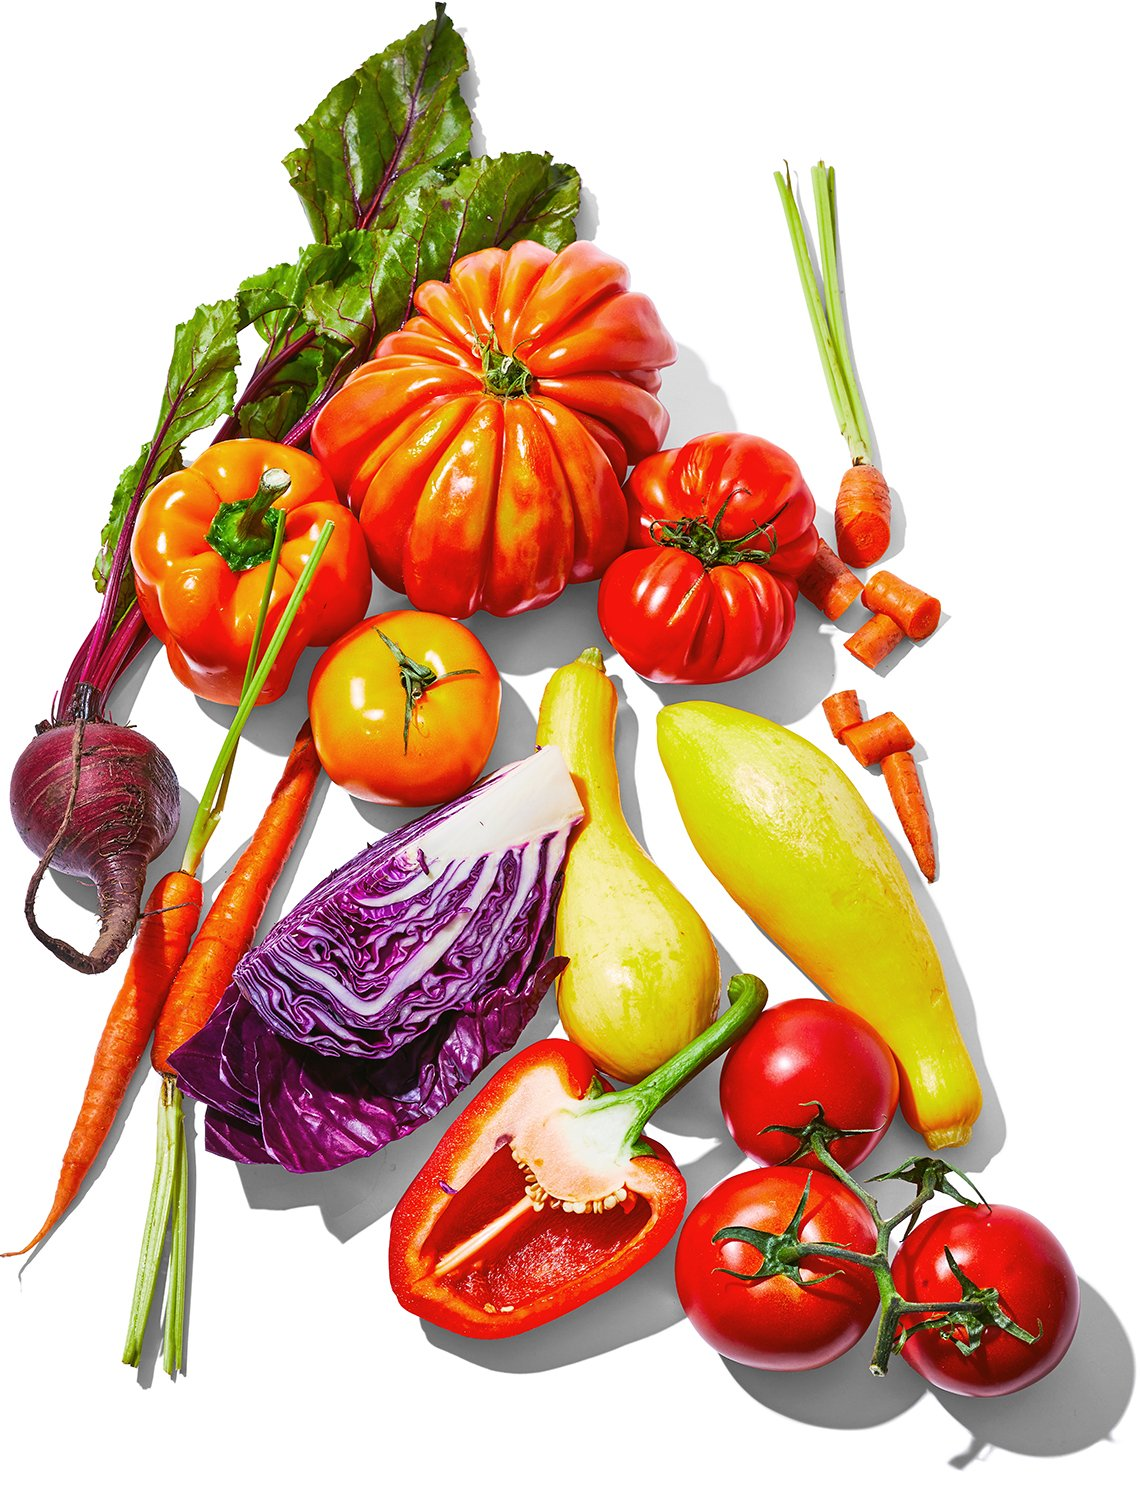 colorful variety of fresh vegetables